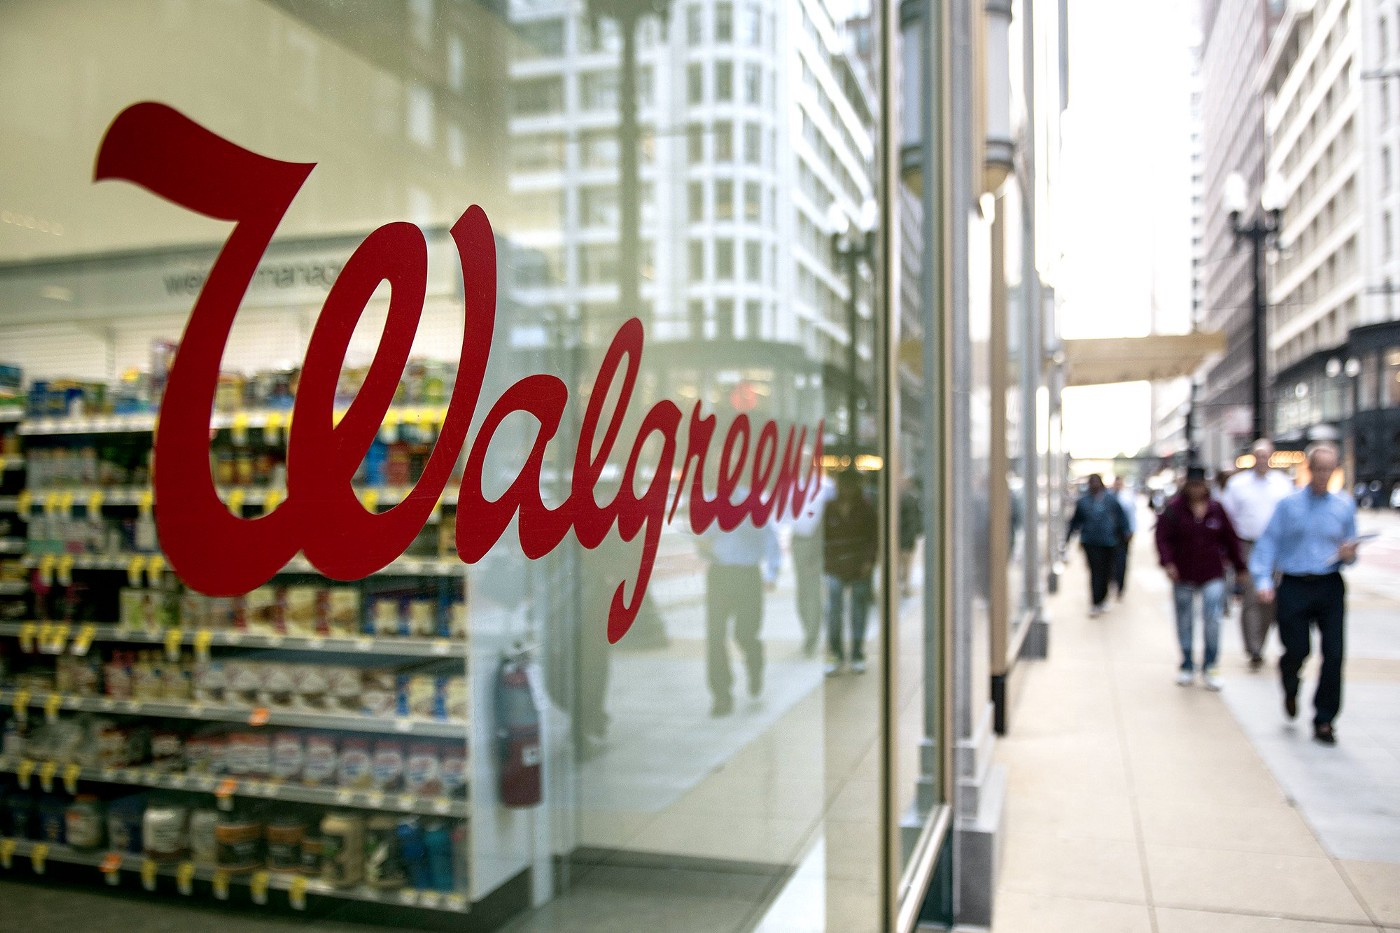 Walgreens is expanding its pharmacy and healthcare services nationwide